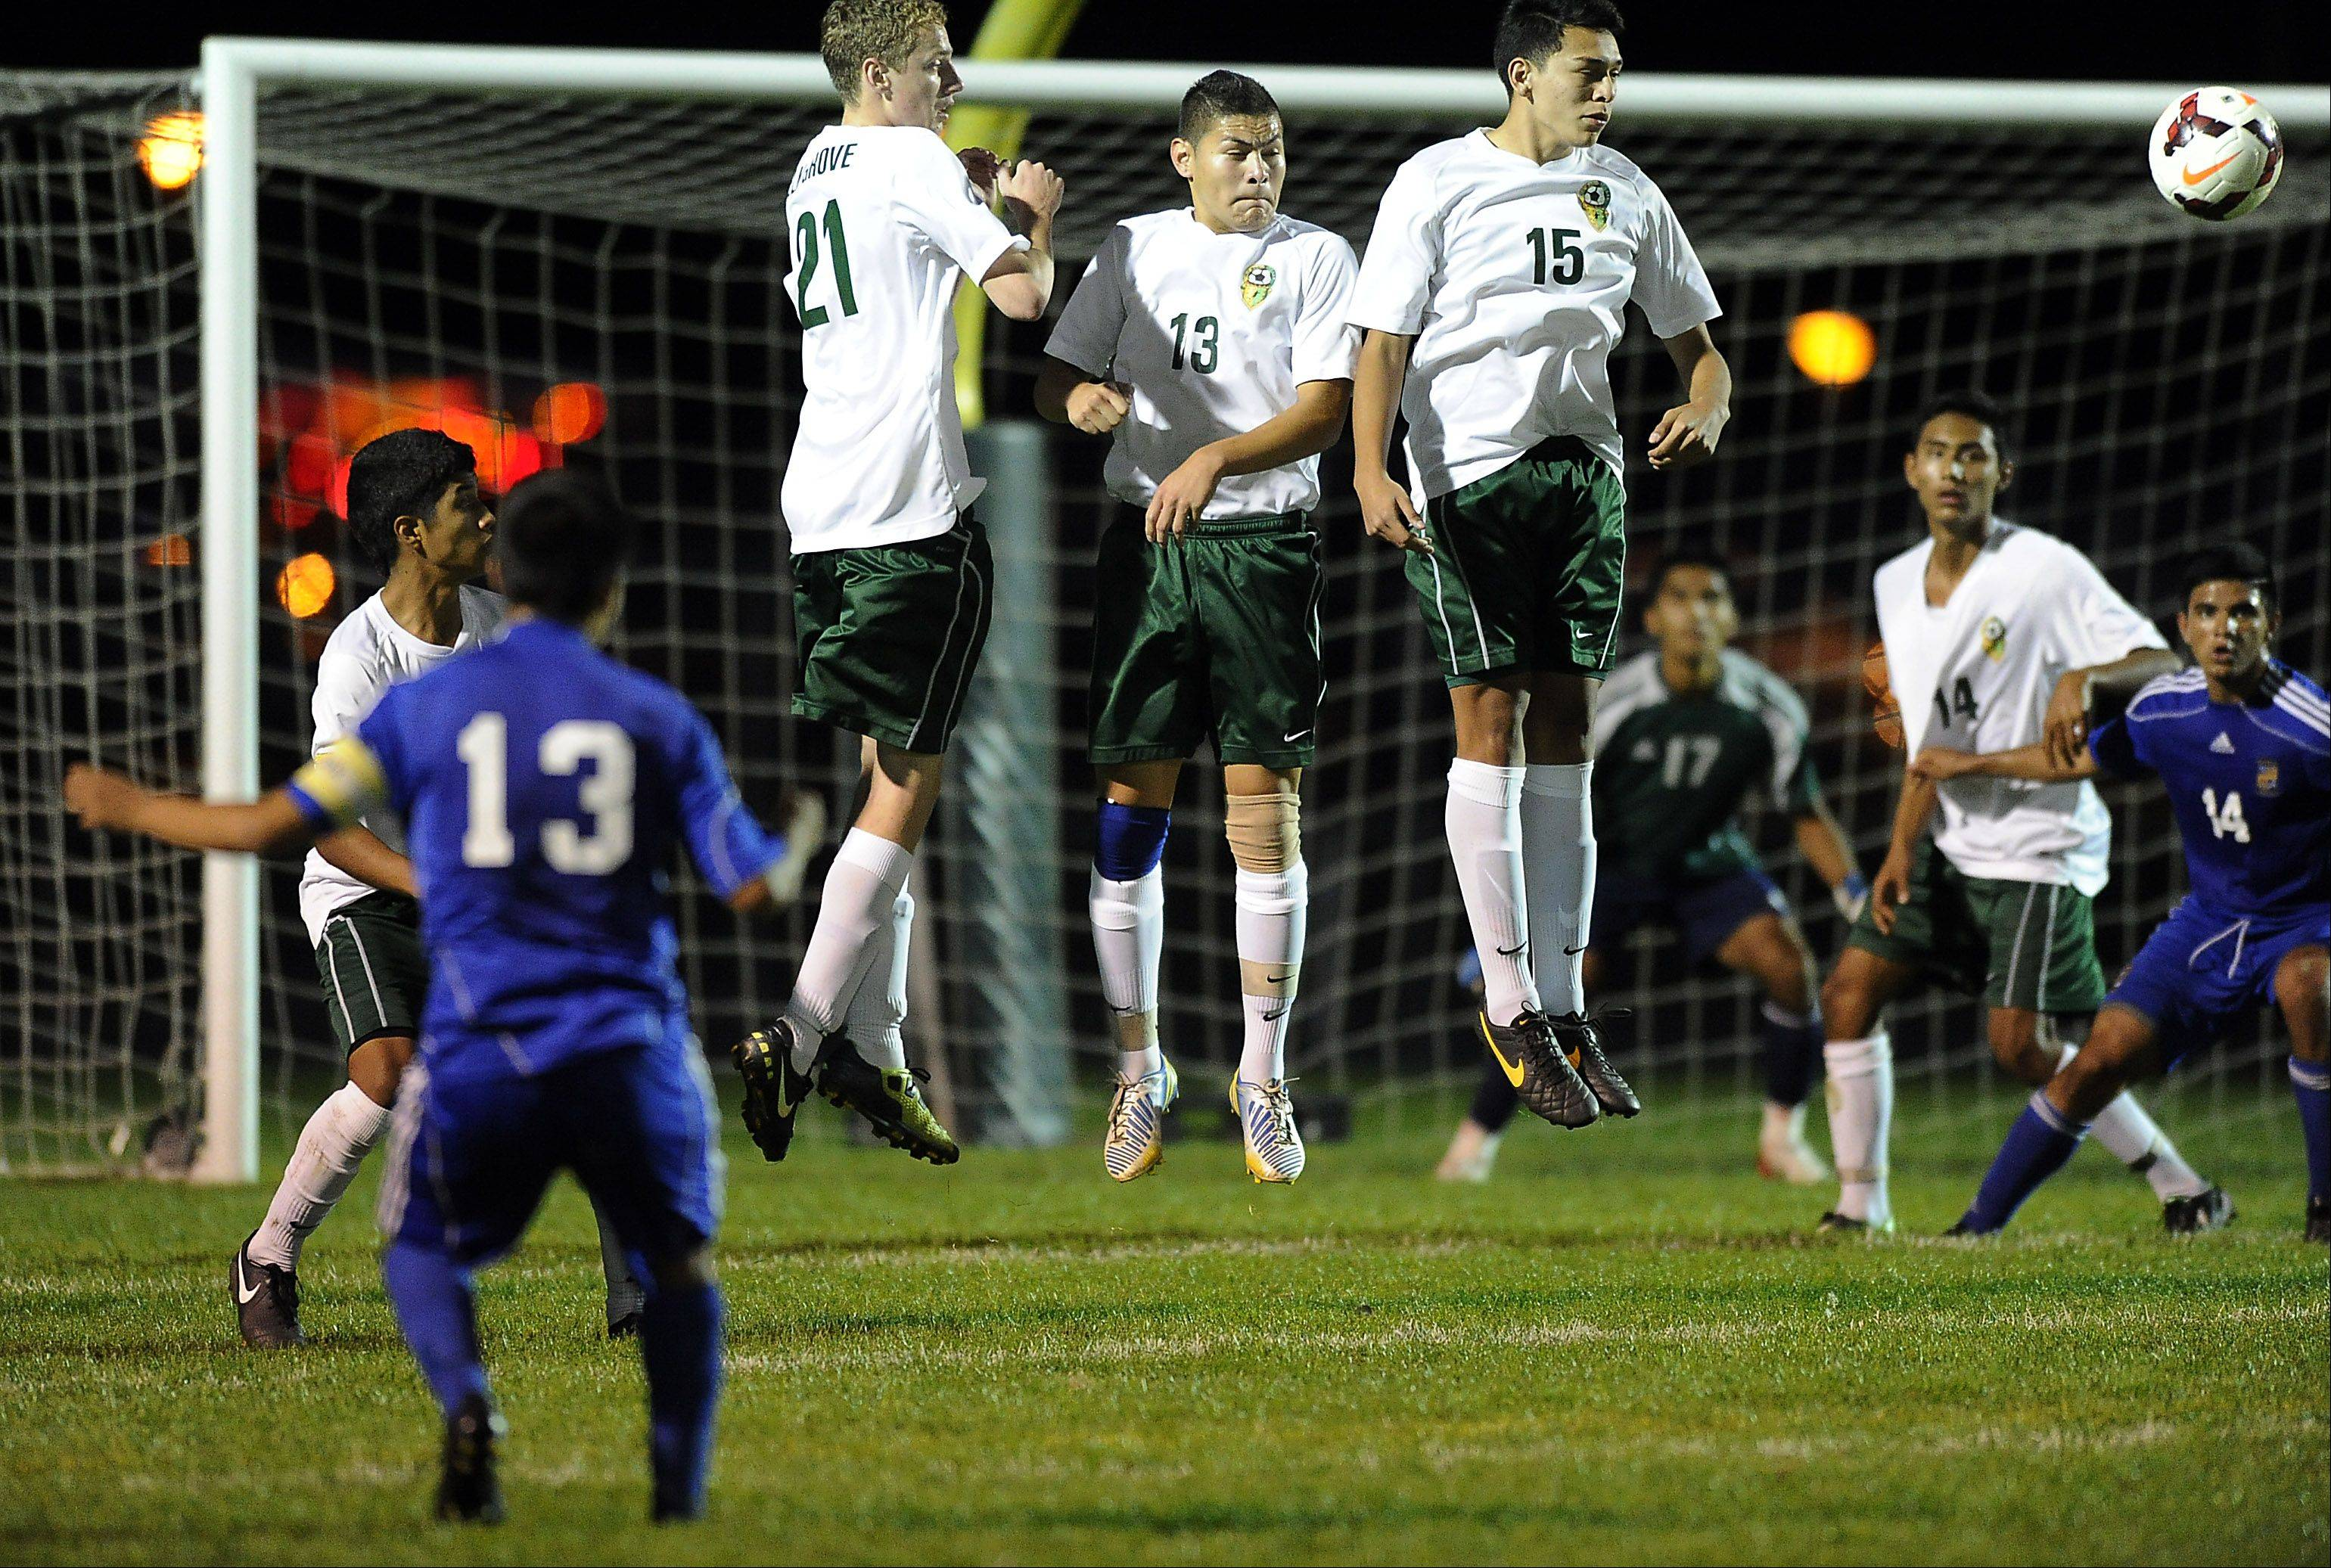 Wheeling's Jose Garcia watches his direct kick sail past Elk Grove's defensive wall for a goal in MSL East action.